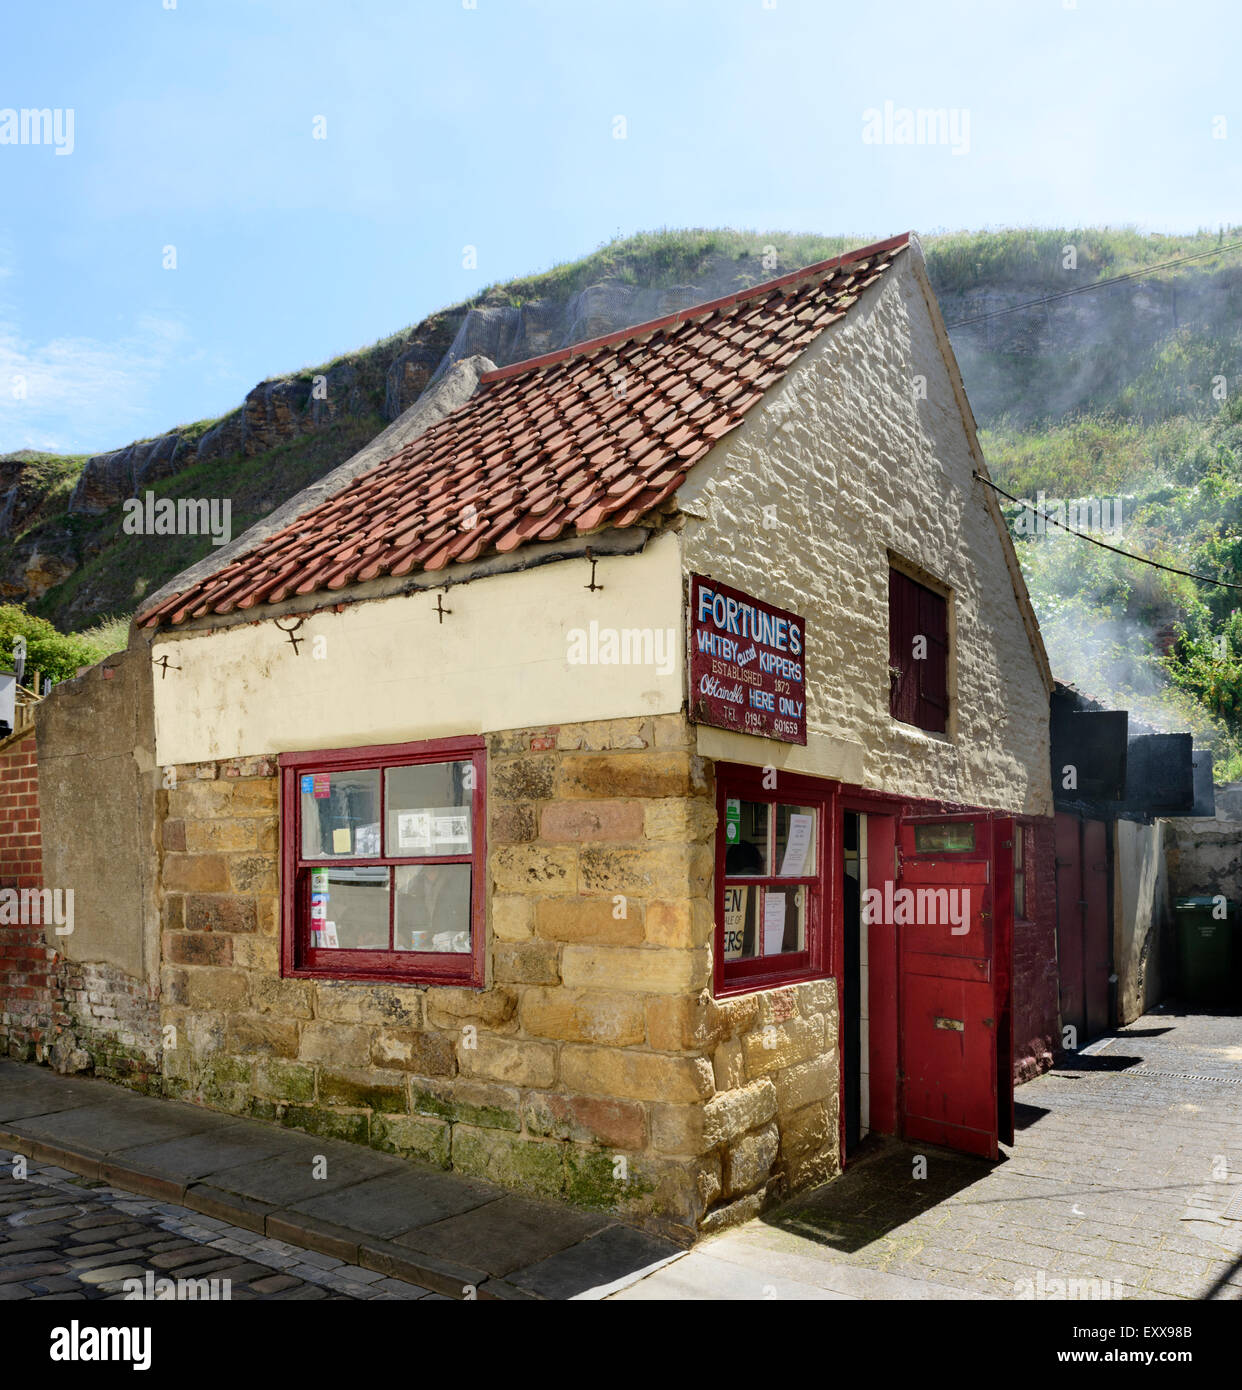 Fortunes Kipper Smokehouse in Whitby - Stock Image